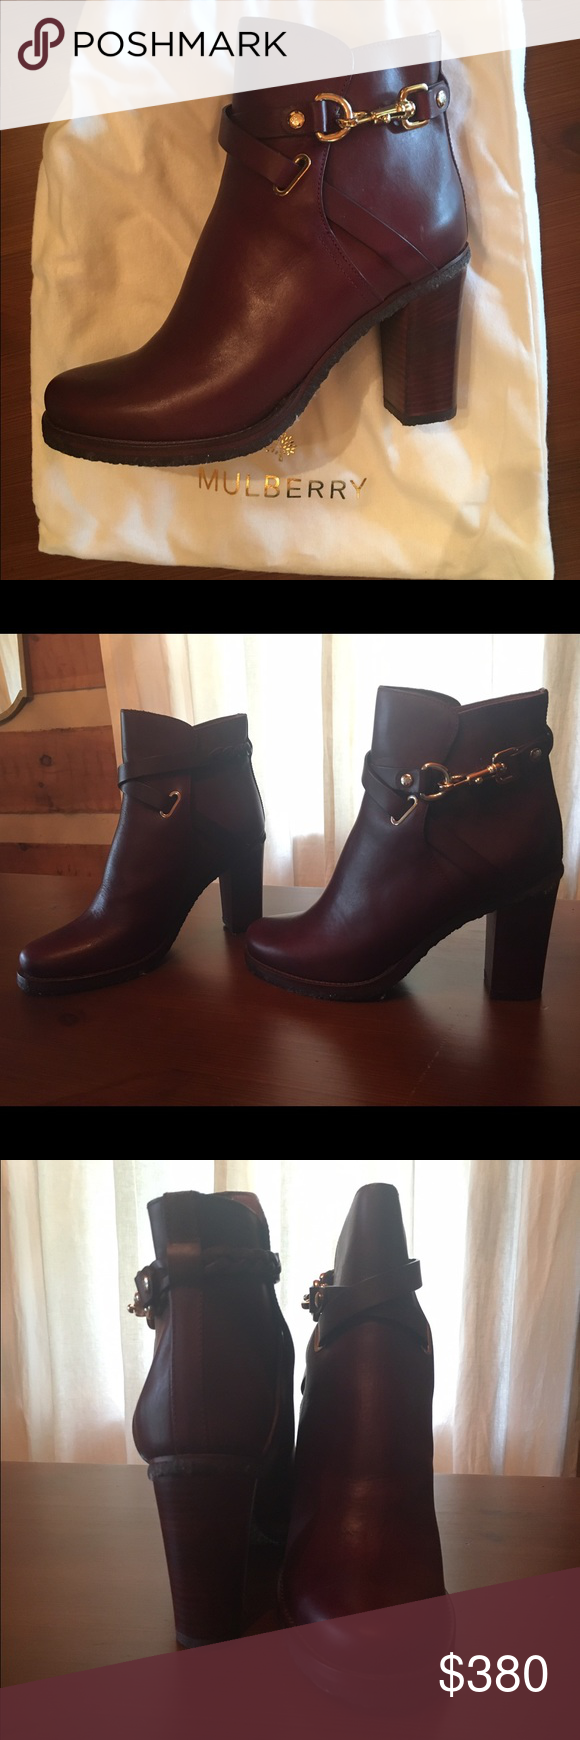 Mulberry Oxblood Bootie Oxblood colored bootie with braided detail around the ankle. Never worn and comes with original box and bags. Mulberry Shoes Ankle Boots & Booties